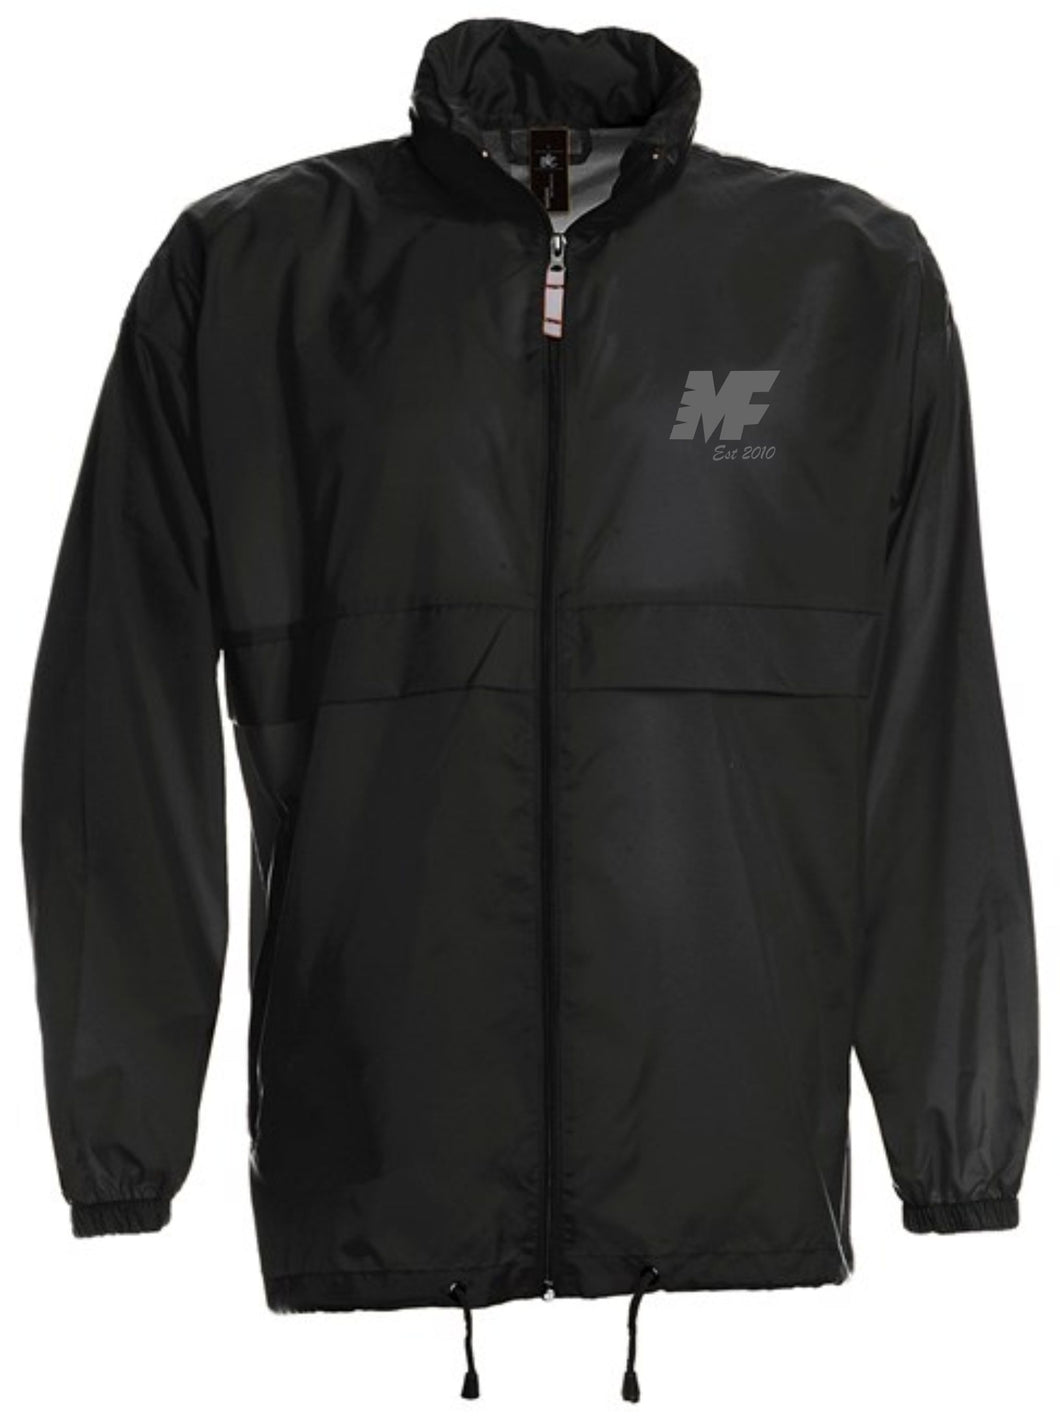 Mainway Light Weight Fitness Shell Jacket